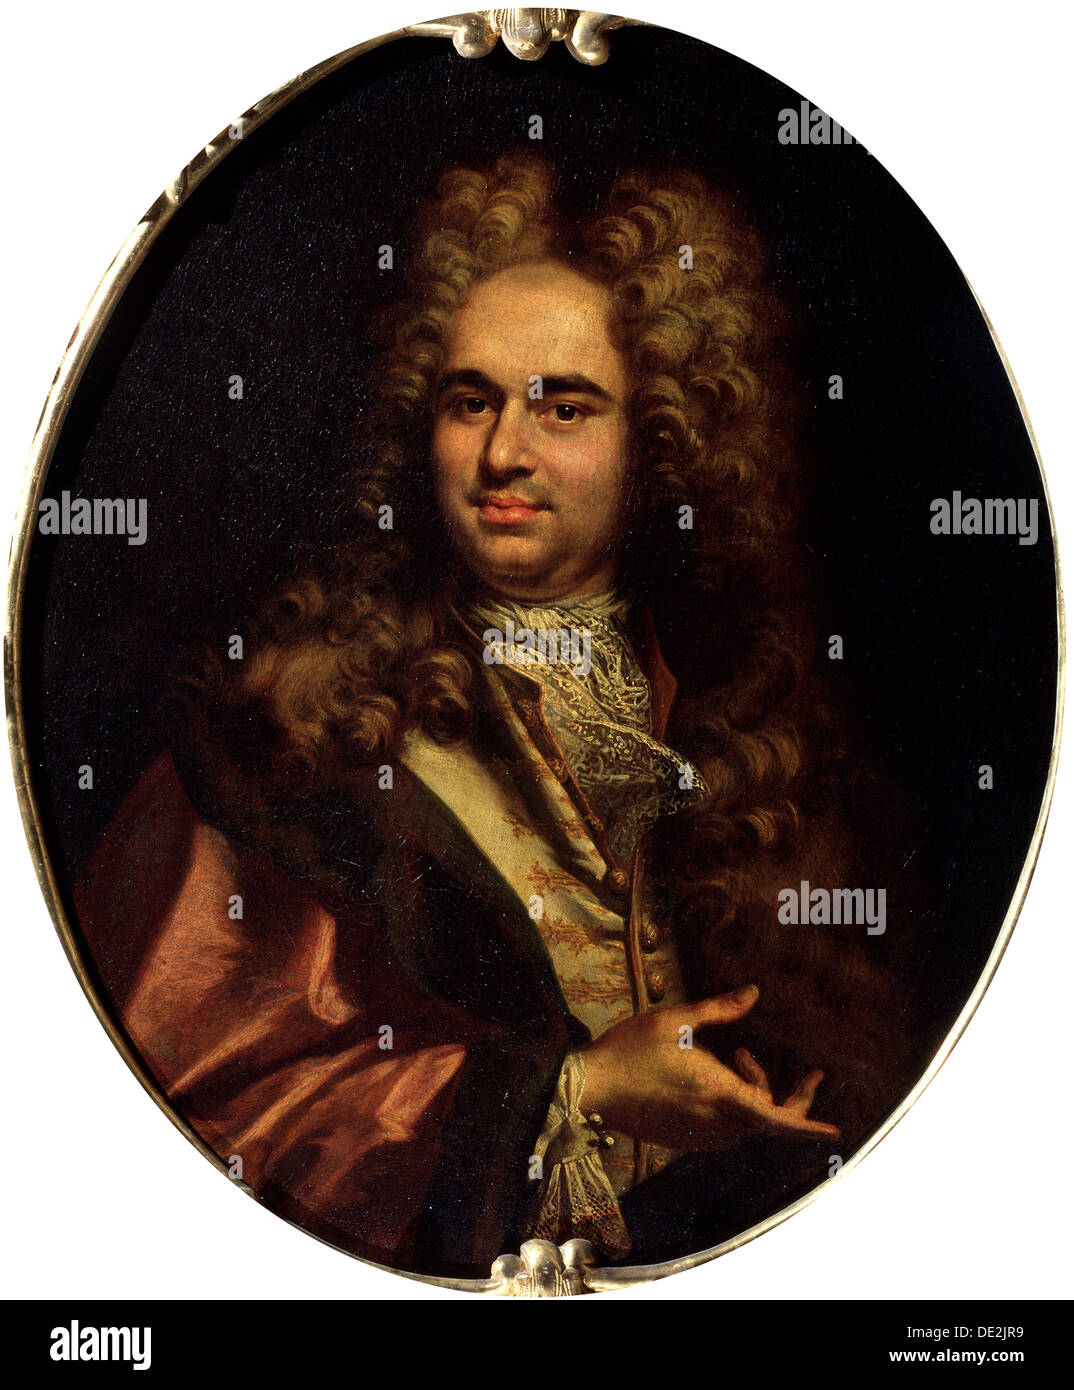 'Portrait of Robert Walpole, 1st Earl of Orford', early 18th century. Artist: French Master - Stock Image